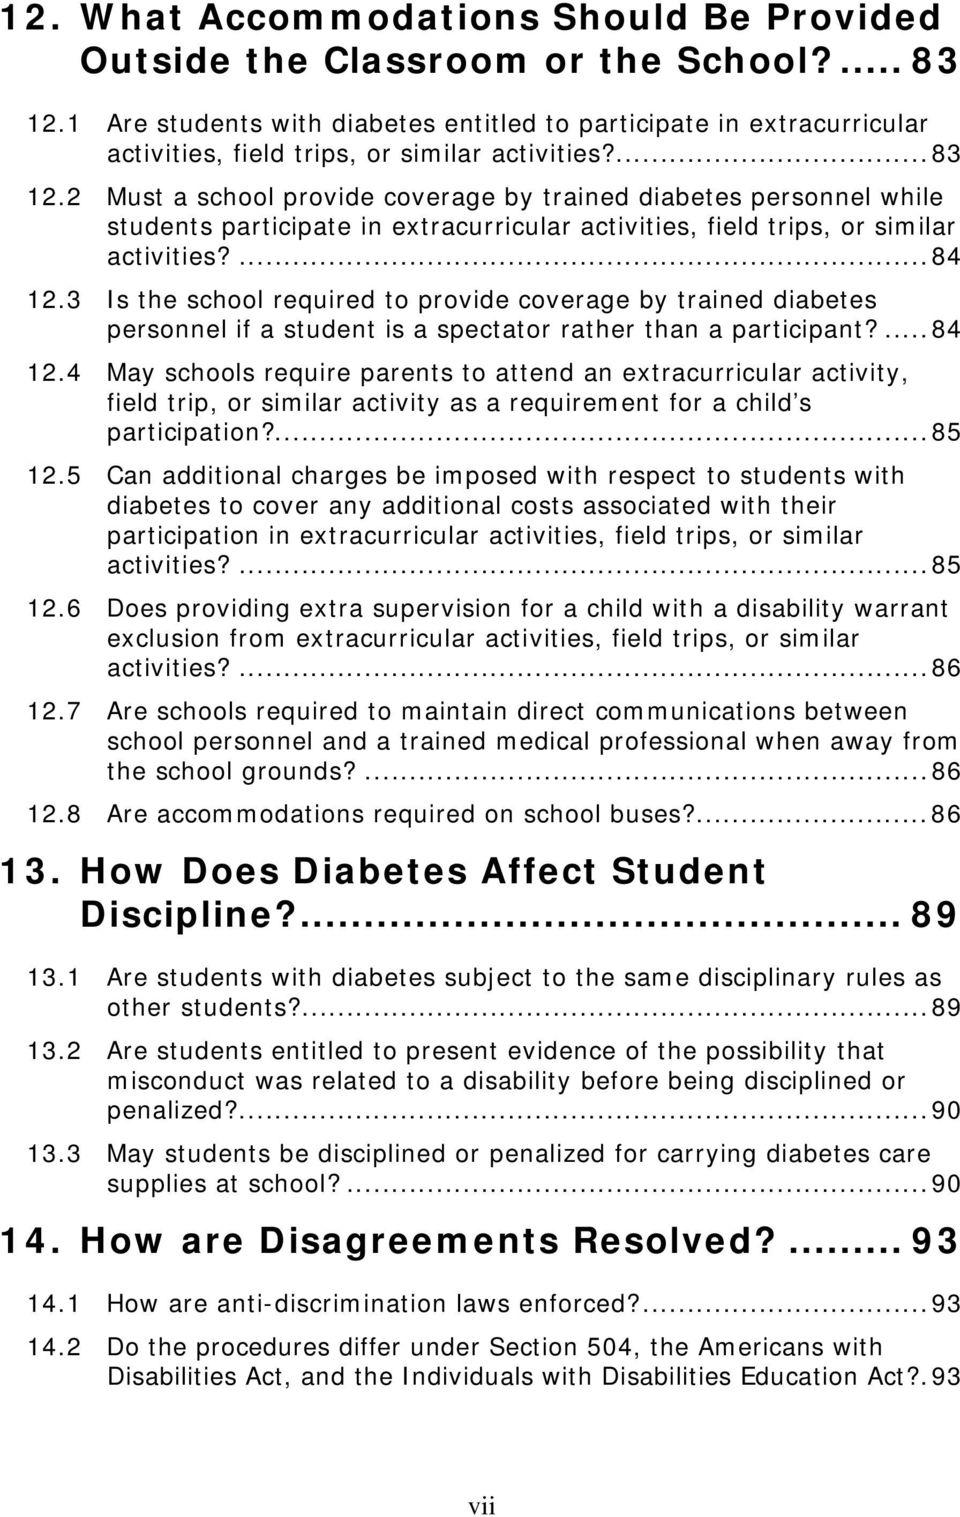 2 Must a school provide coverage by trained diabetes personnel while students participate in extracurricular activities, field trips, or similar activities?...84 12.